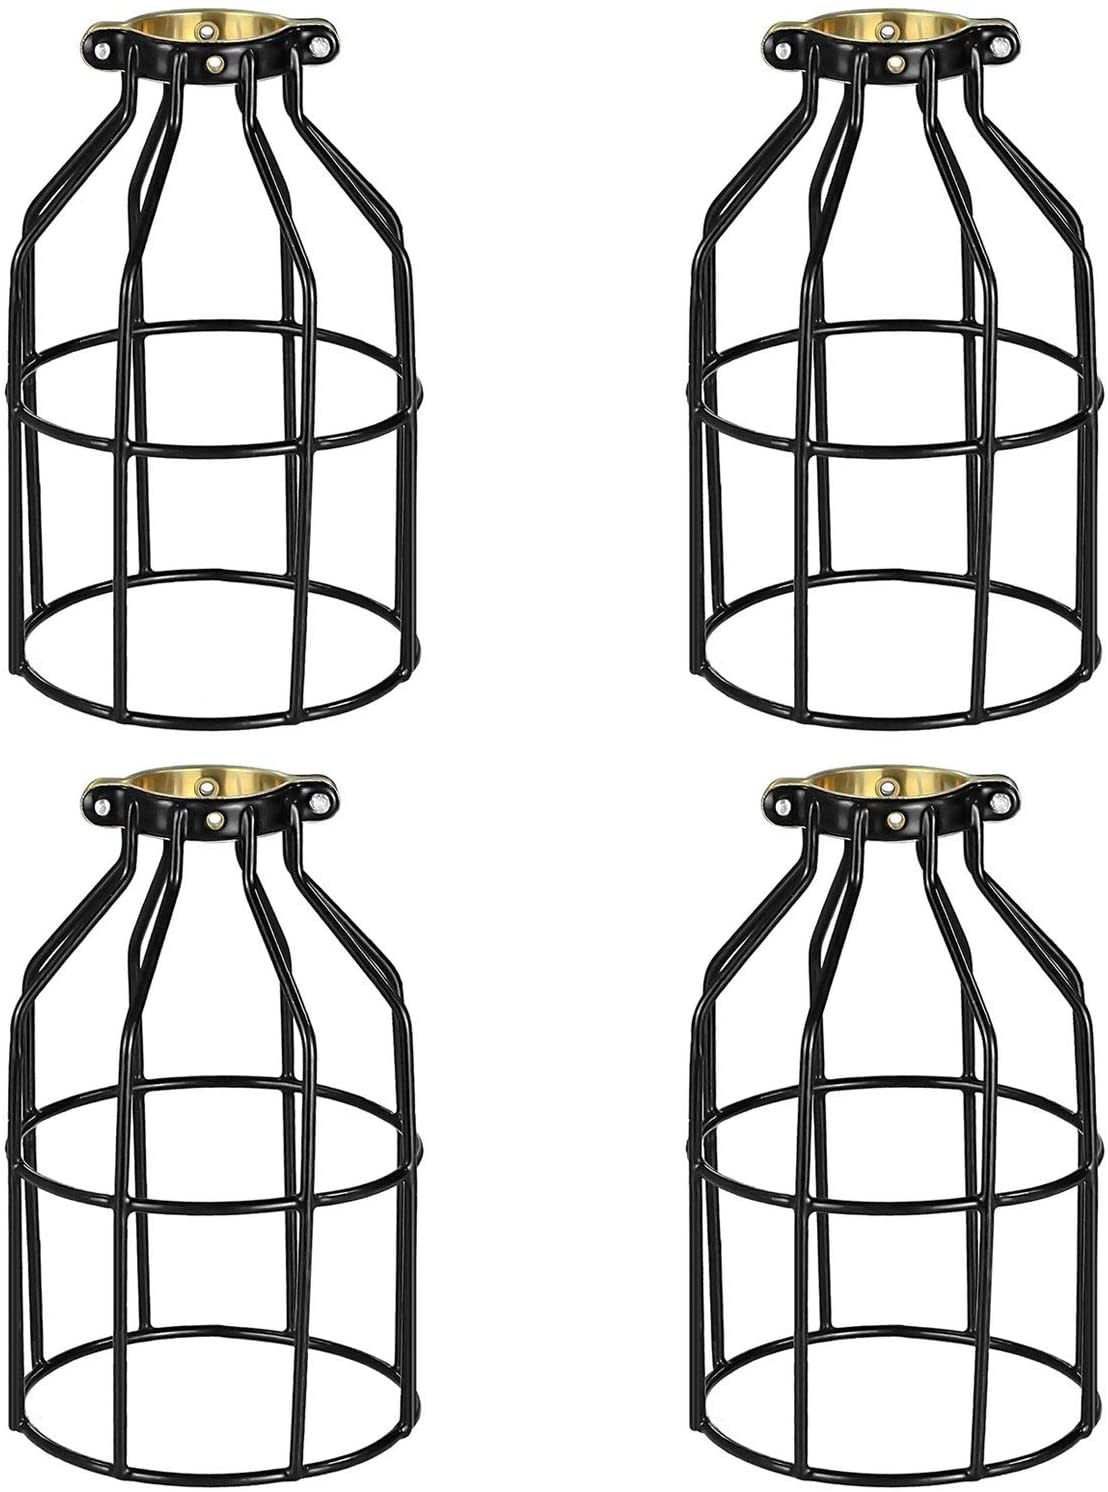 Simple Deluxe HILAMPCAGEX4 4-Pack Adjustable Industrial Clamp On Metal Bulb Guard Cage for Pendant Vintage Lamp Holder and Ceiling Fan Light, Black